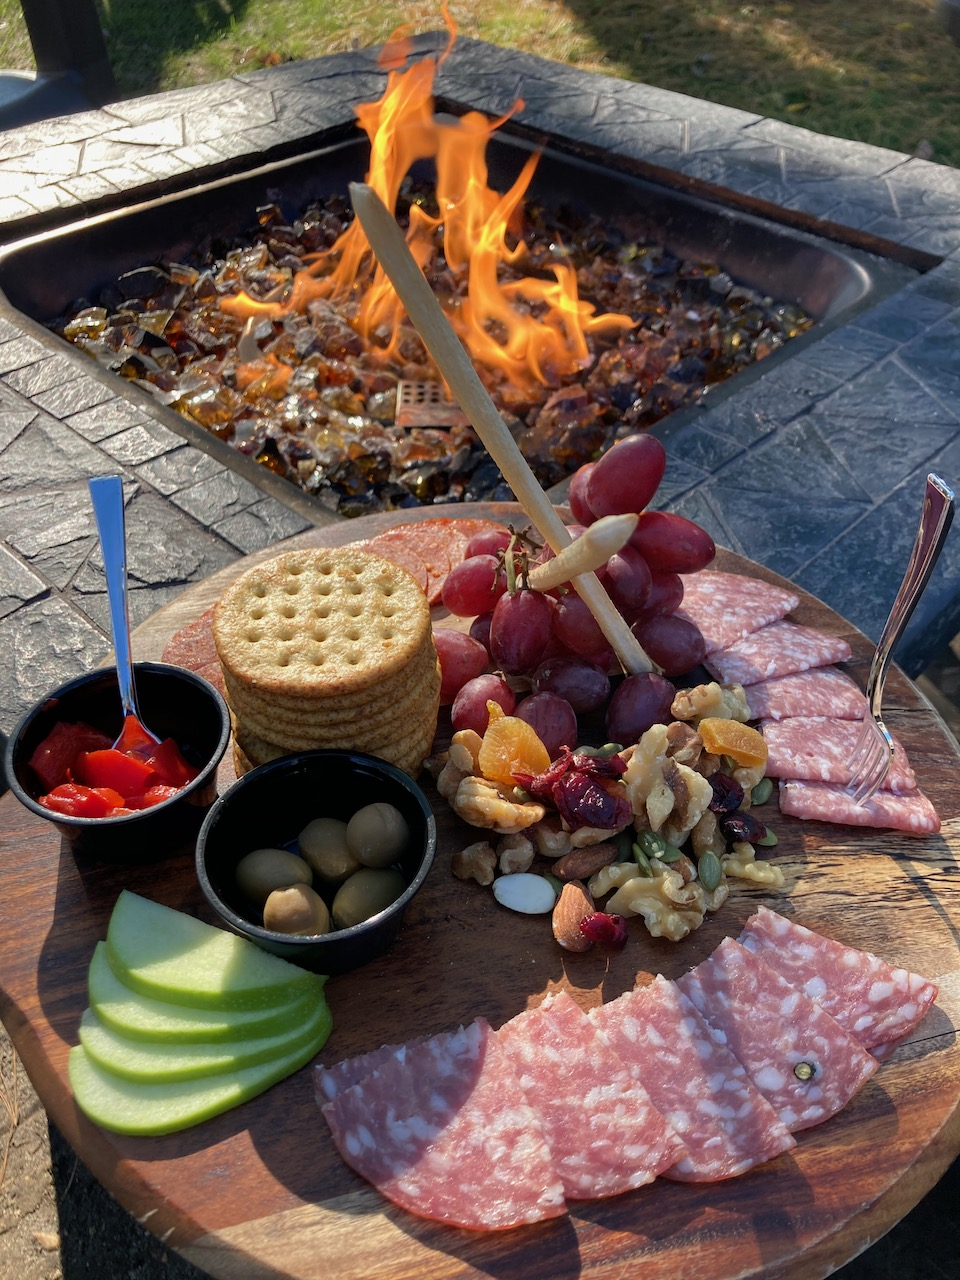 Cheese and fruit spread on wooden platter beside fire pit.